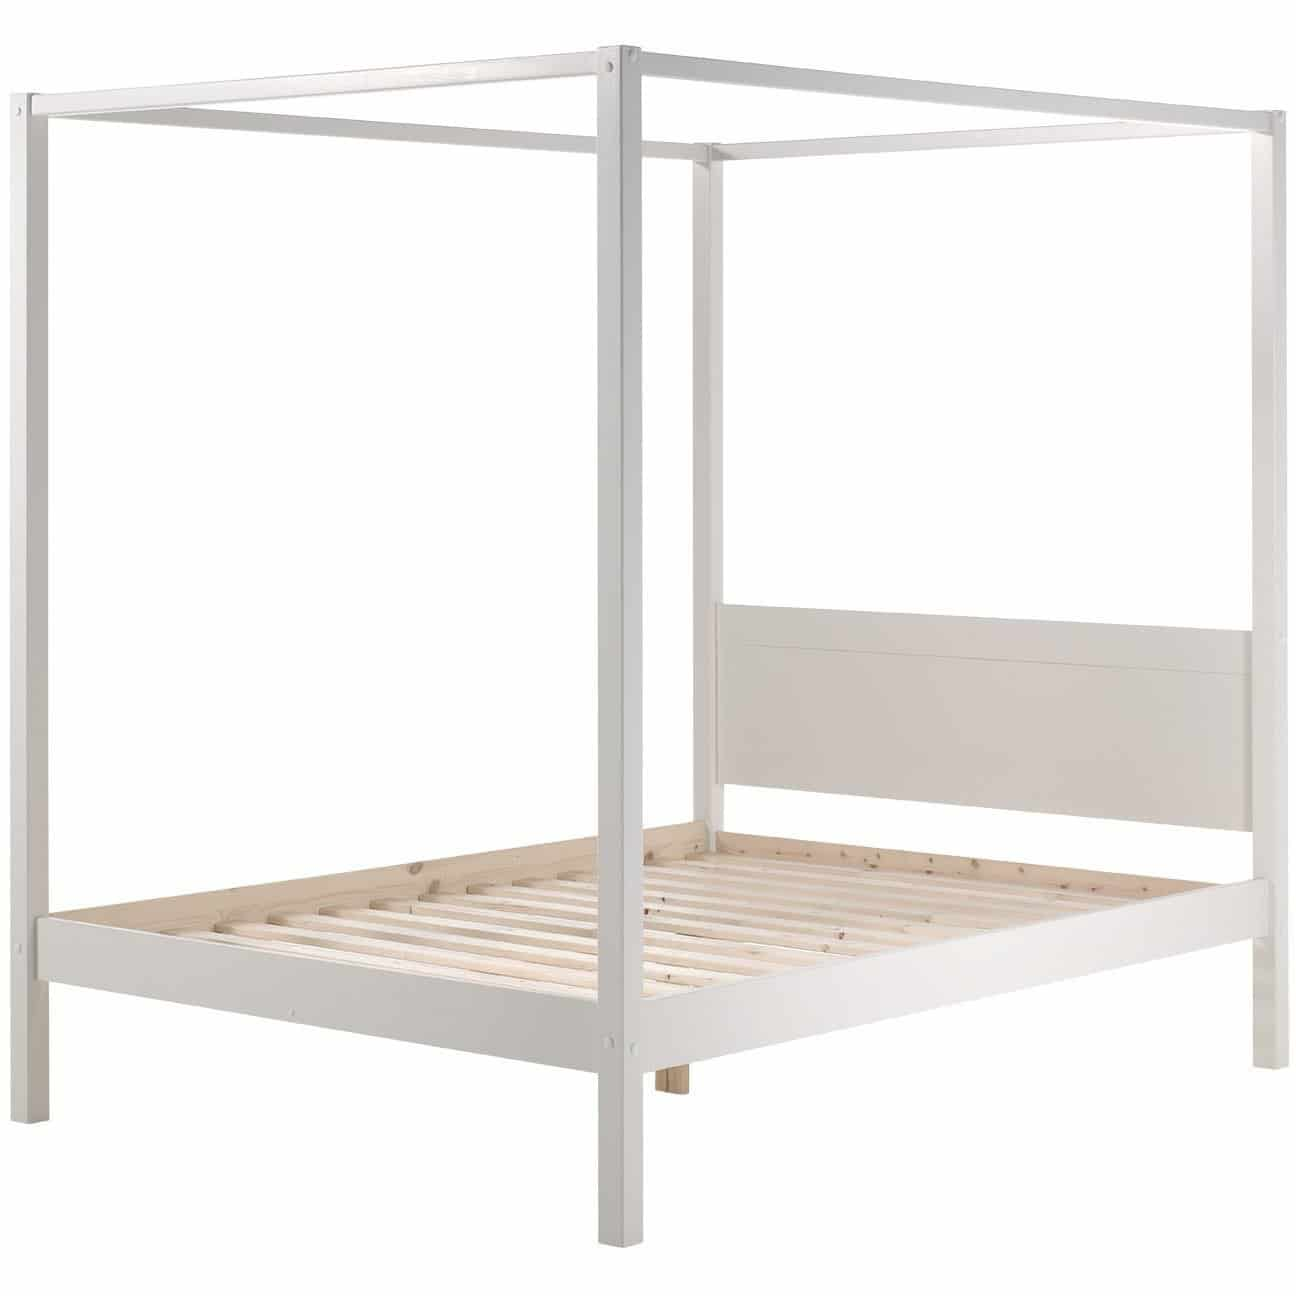 Pino - 4 Poster Double Bed  from interie furniture